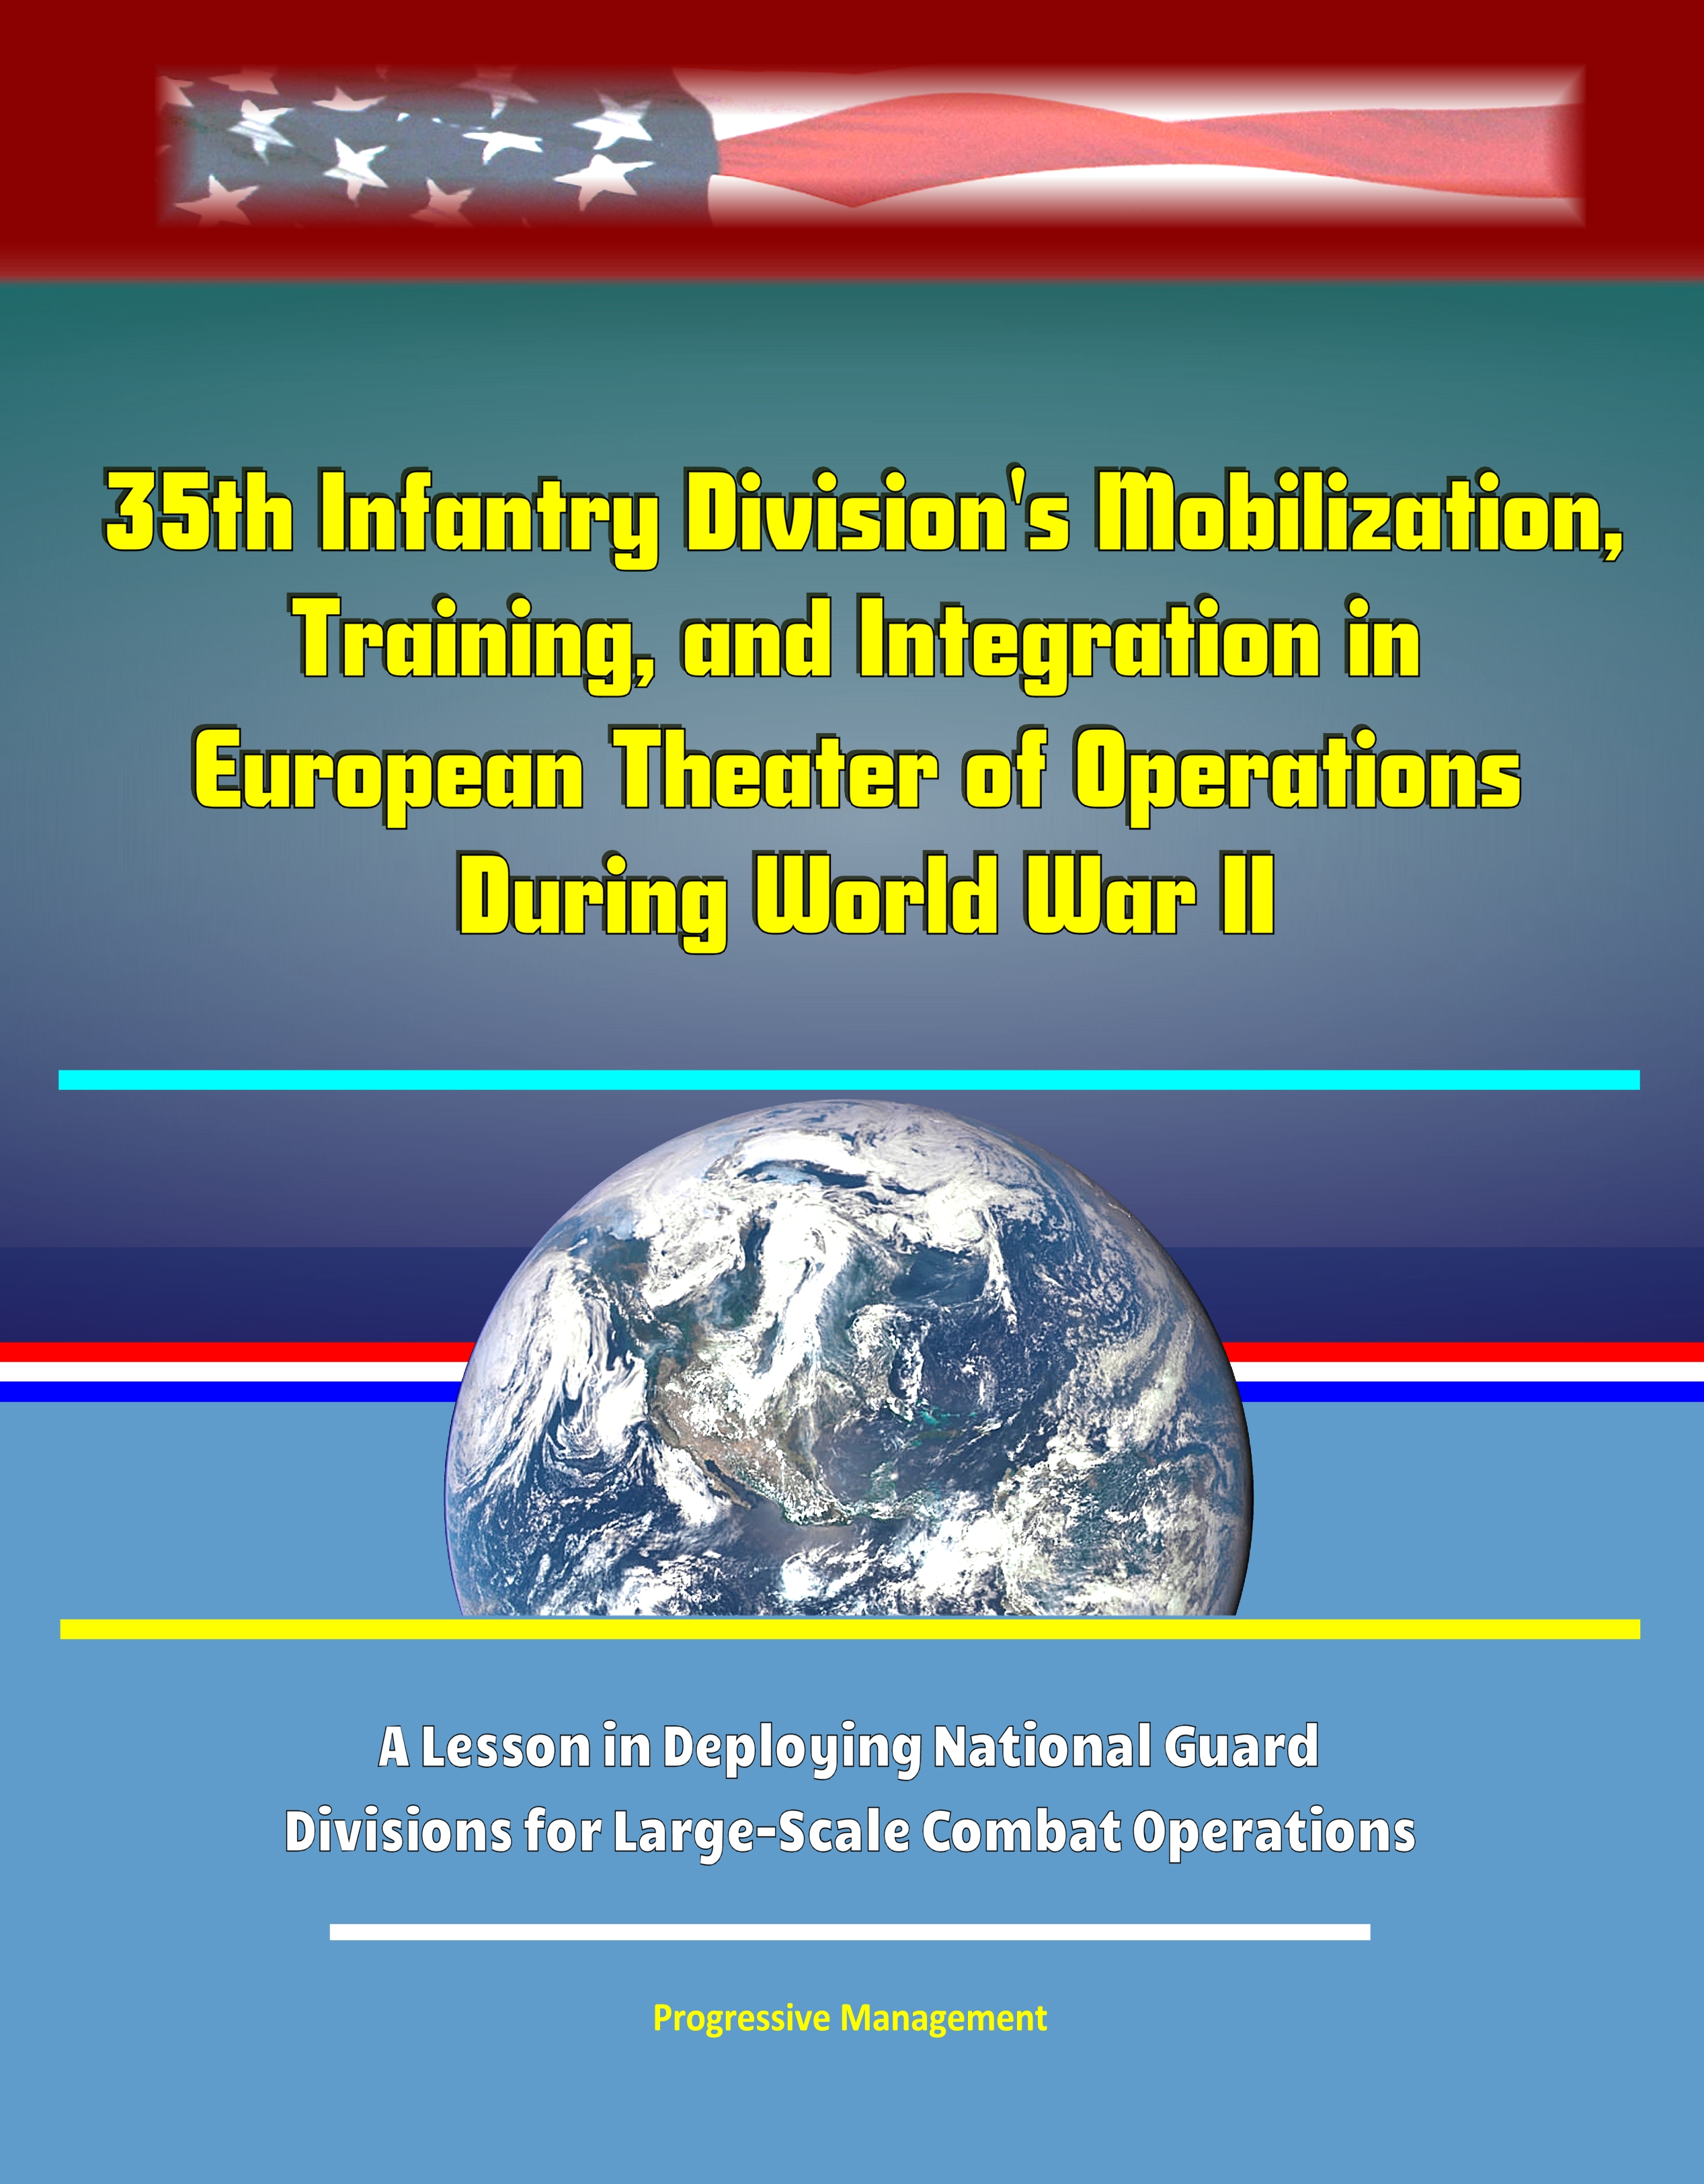 35th Infantry Division's Mobilization, Training, and Integration in  European Theater of Operations During World War II: A Lesson in Deploying  National